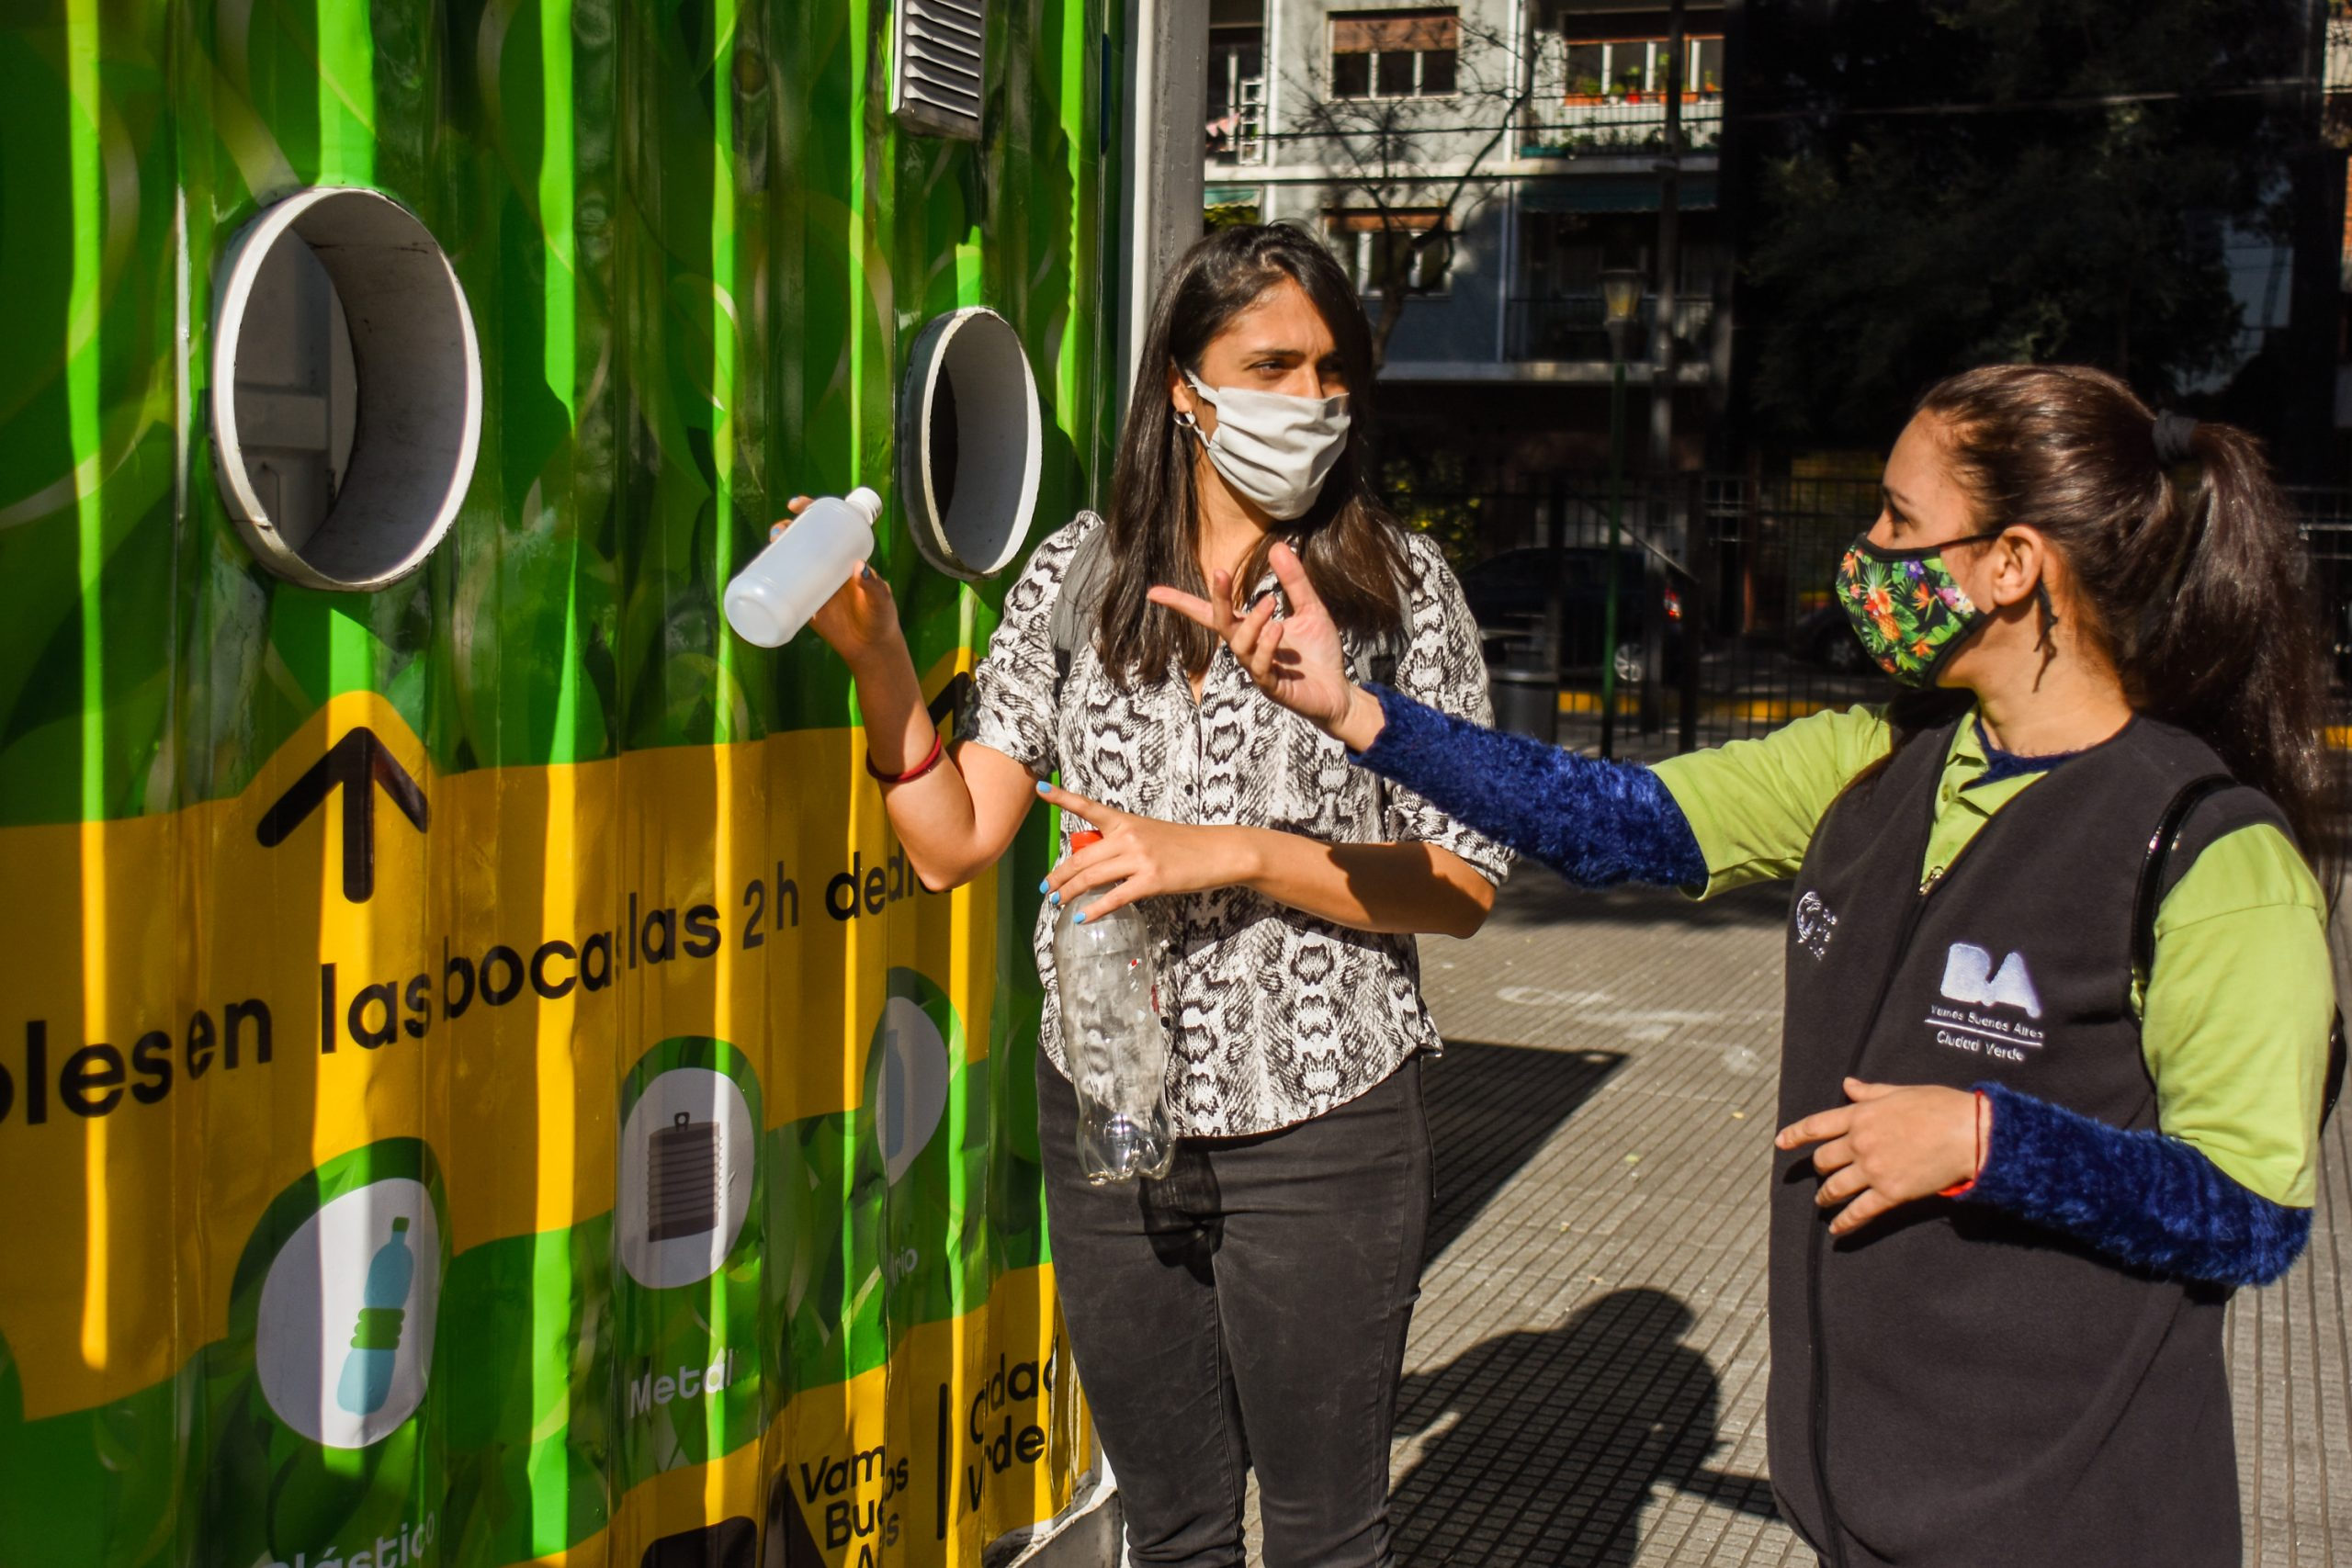 Where are the green points to leave the recyclables |